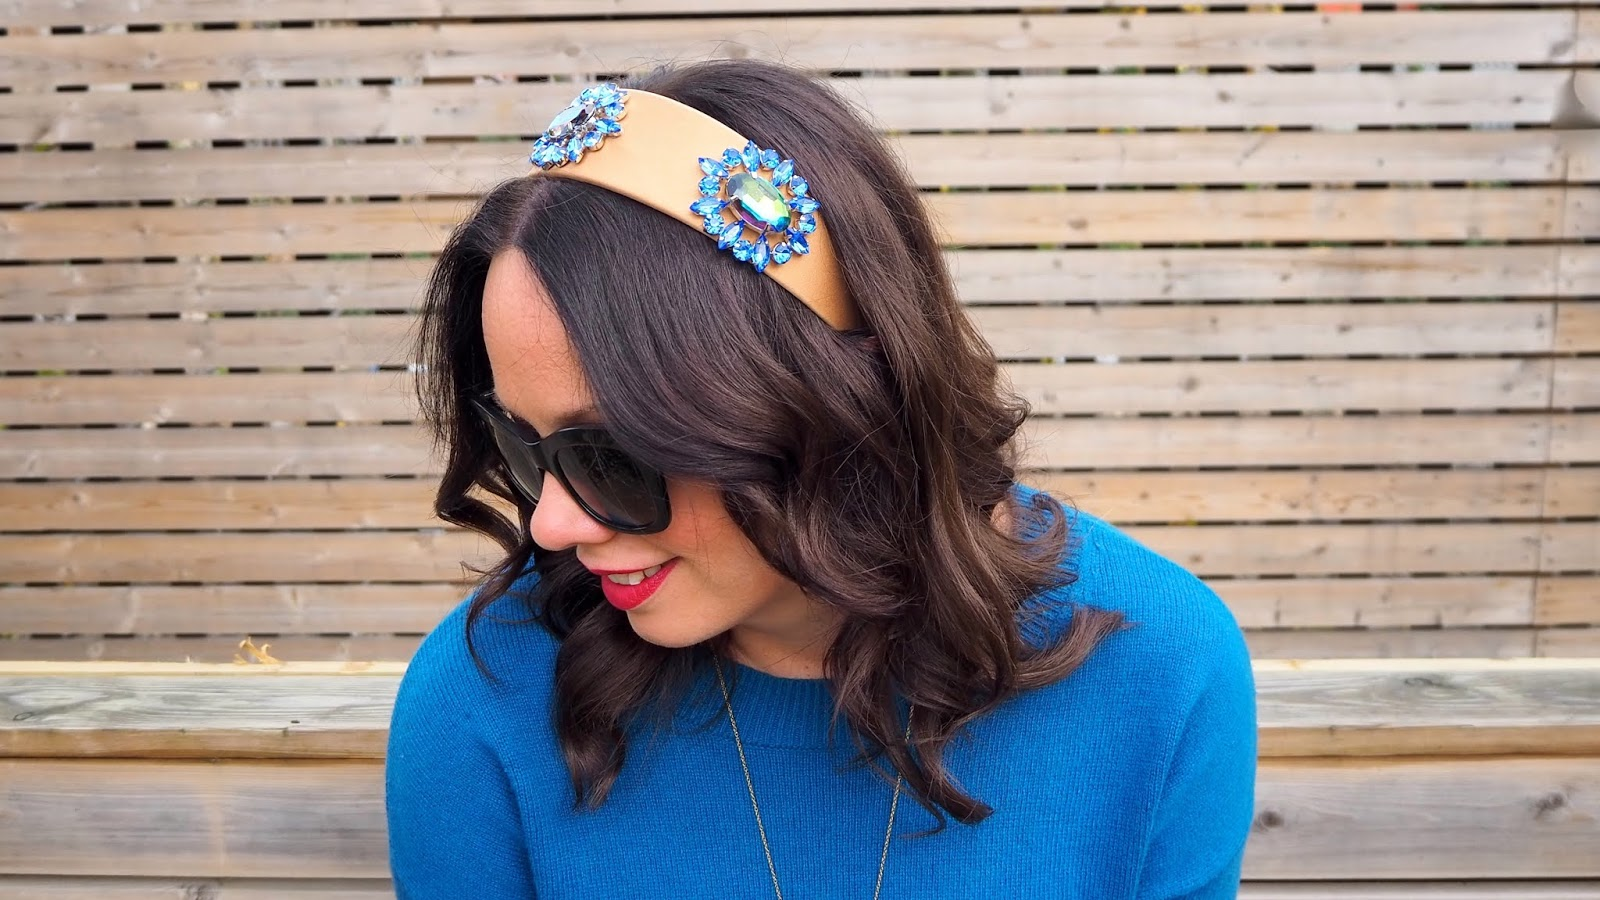 Crown Jewels - Headbands That Sparkle